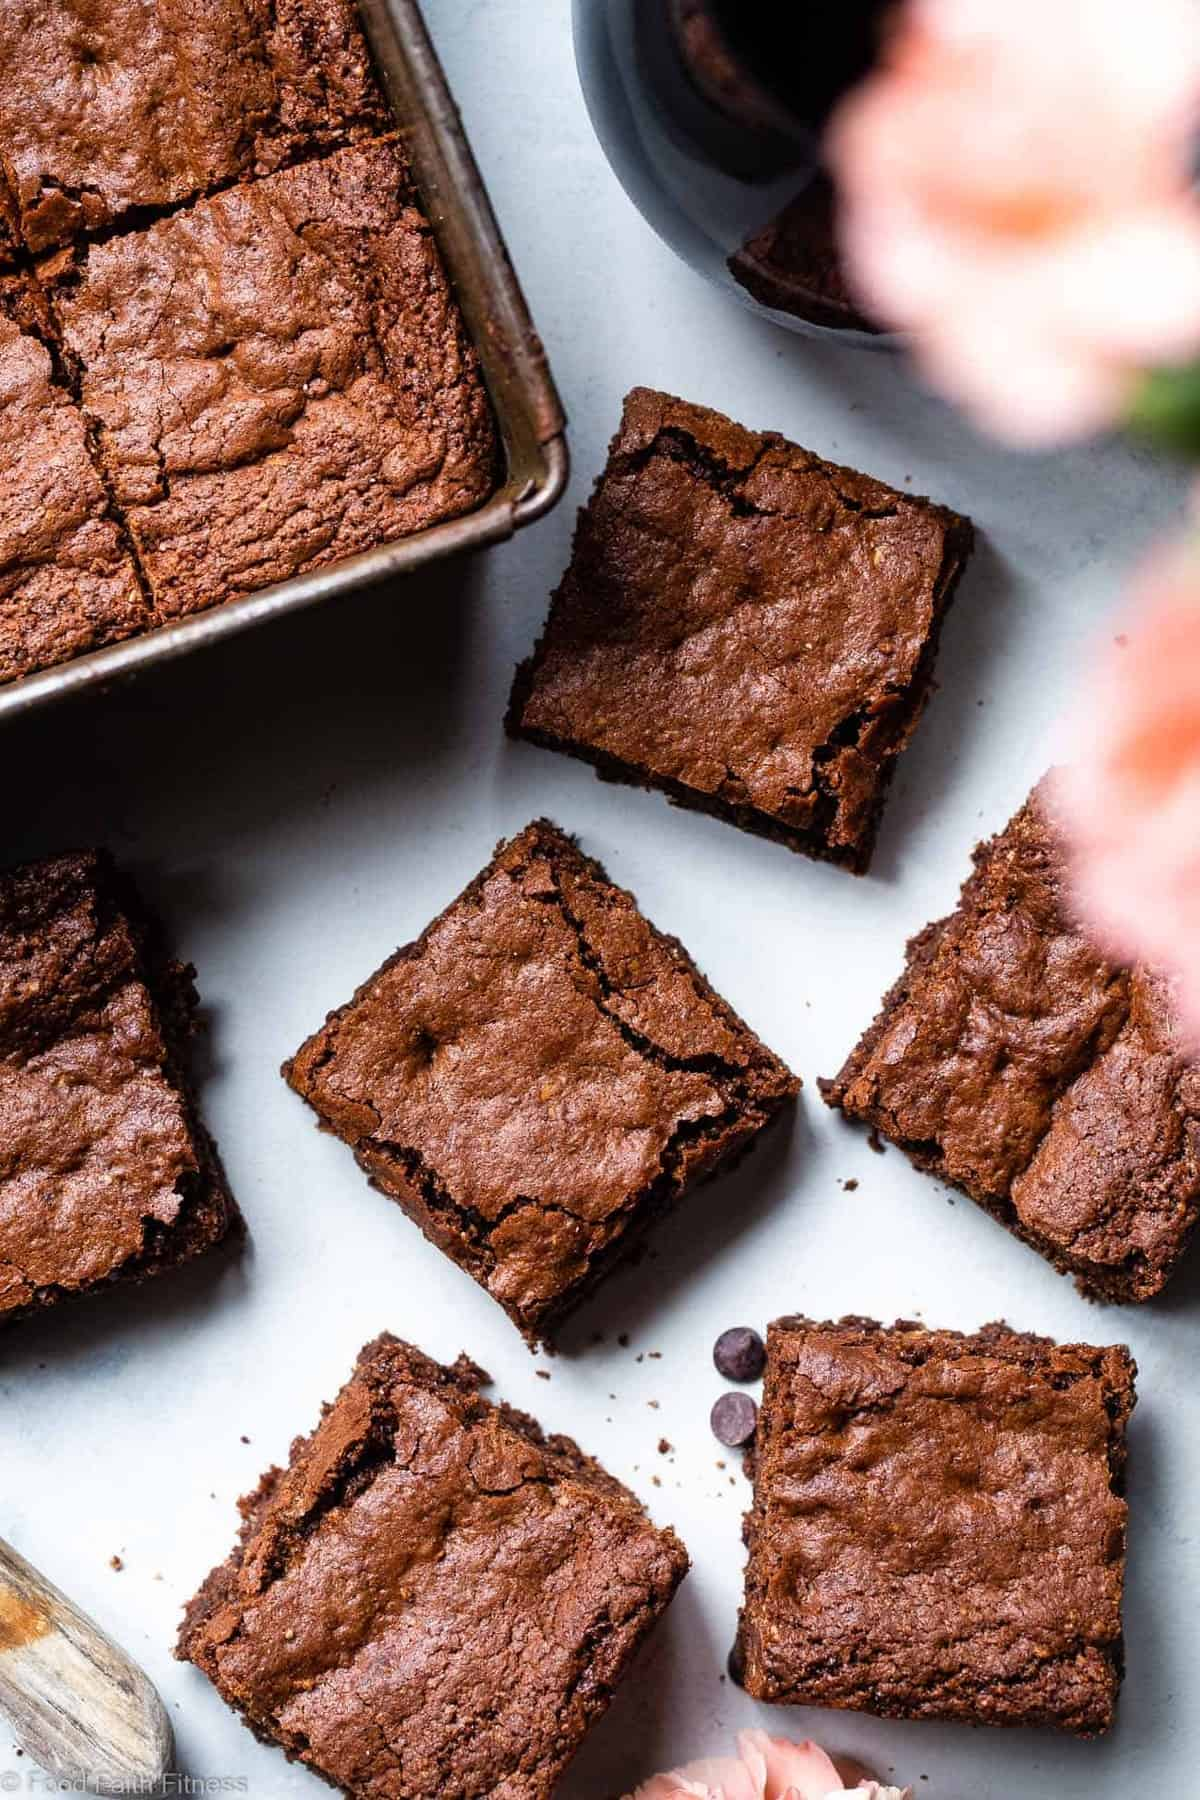 Easy Gluten Free Dairy Free Brownies - These grain free, healthy brownies come together in less than an hour and are SO dense, chewy and FUDGY! Paleo friendly, gluten and dairy free and SO delicious! | #Foodfaithfitness | #Glutenfree #Dairyfree #Paleo #Healthy #Brownies